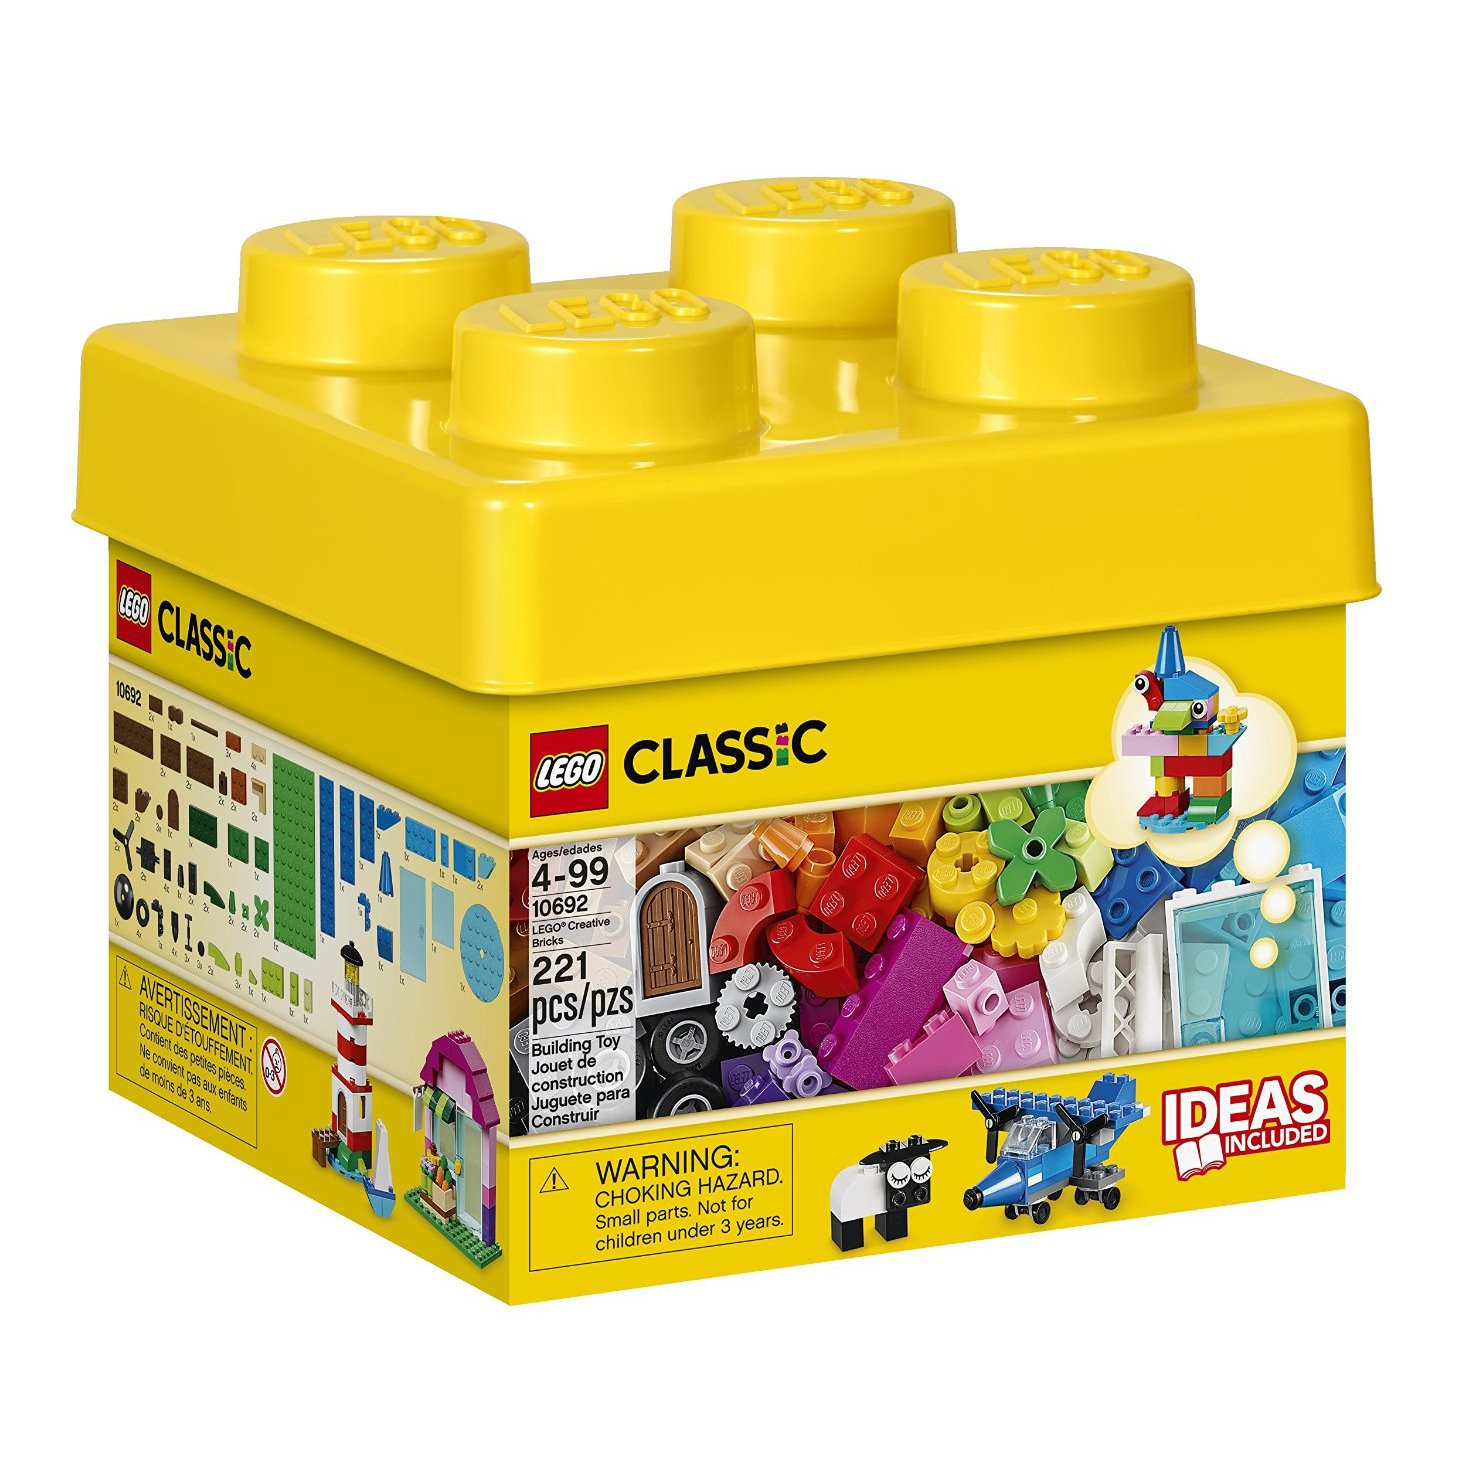 LEGO Classic Small Creative Bricks Kids 221 Piece Building Box Set | 10692